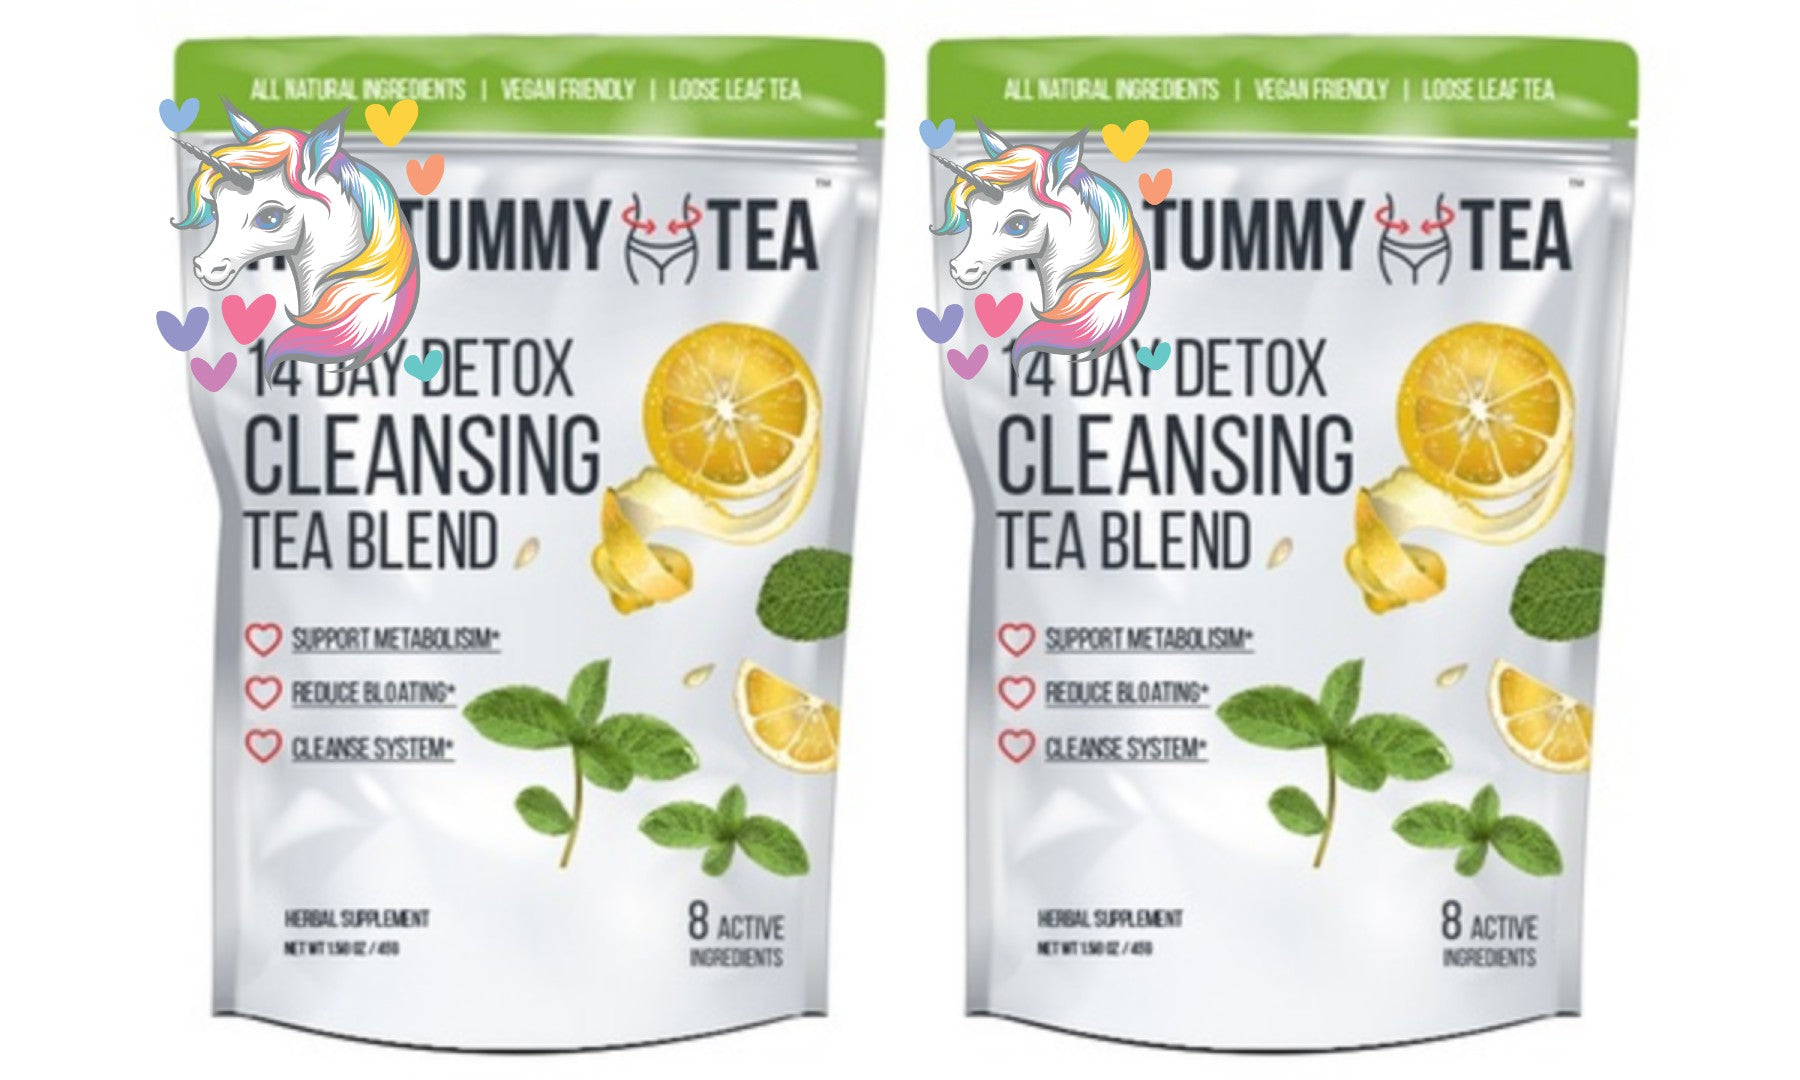 Slimming Tea Product Line Business Package